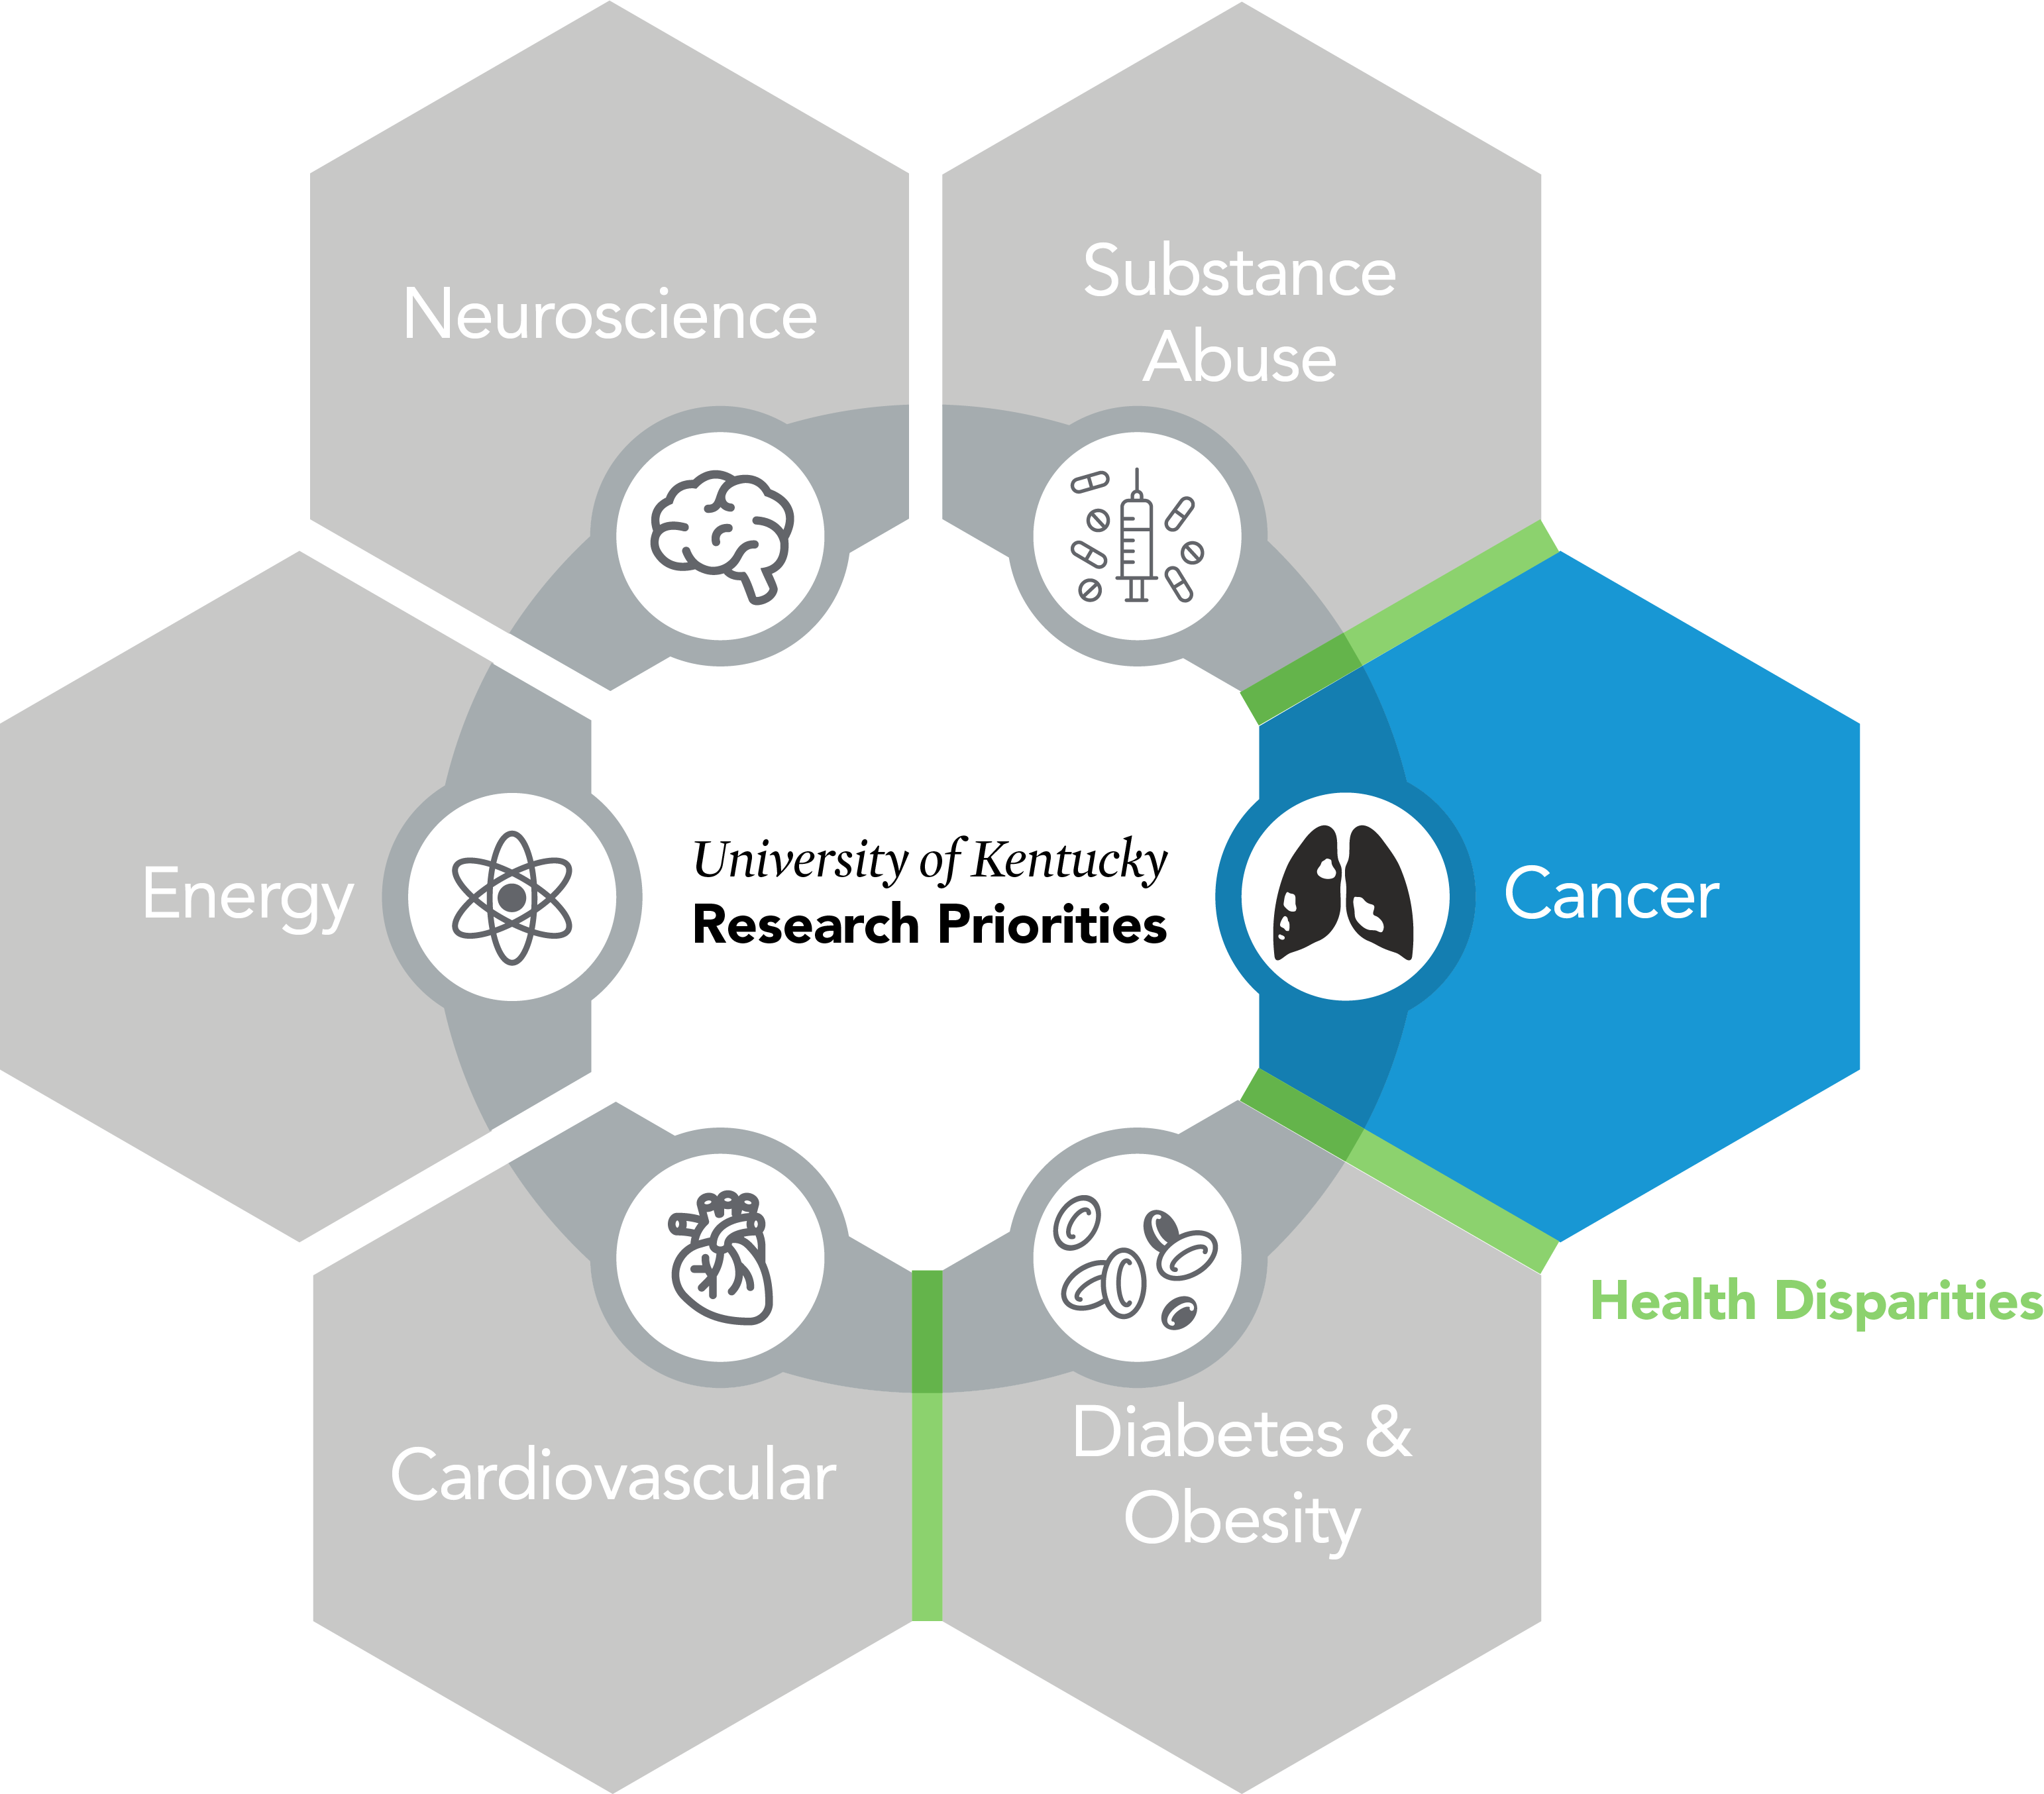 Research Priority: highlighted: Cancer; Cardiovascular, Obesity & Diabetes, Energy, Neuroscience, Substance Abuse